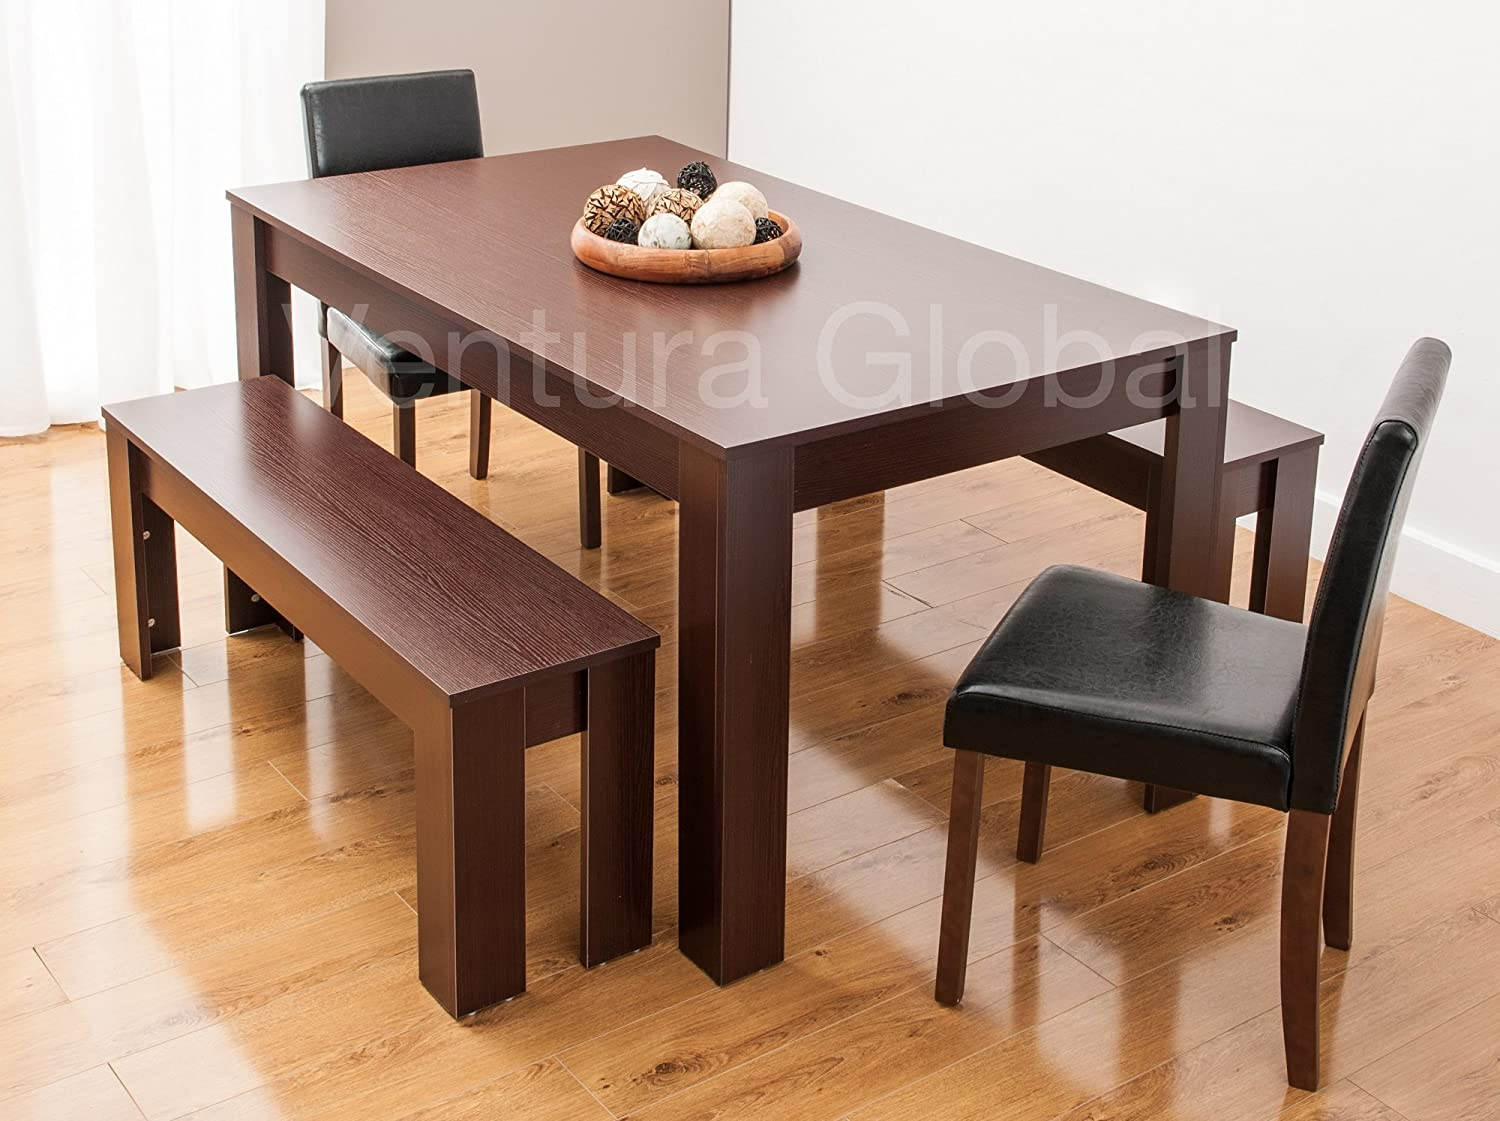 Phenomenal Dining Table With Faux Leather Chairs And Bench Oak Walnut Furniture Room Set By Smartdesignfurnishings Table 2 Chairs 2 Benches Walnut Caraccident5 Cool Chair Designs And Ideas Caraccident5Info